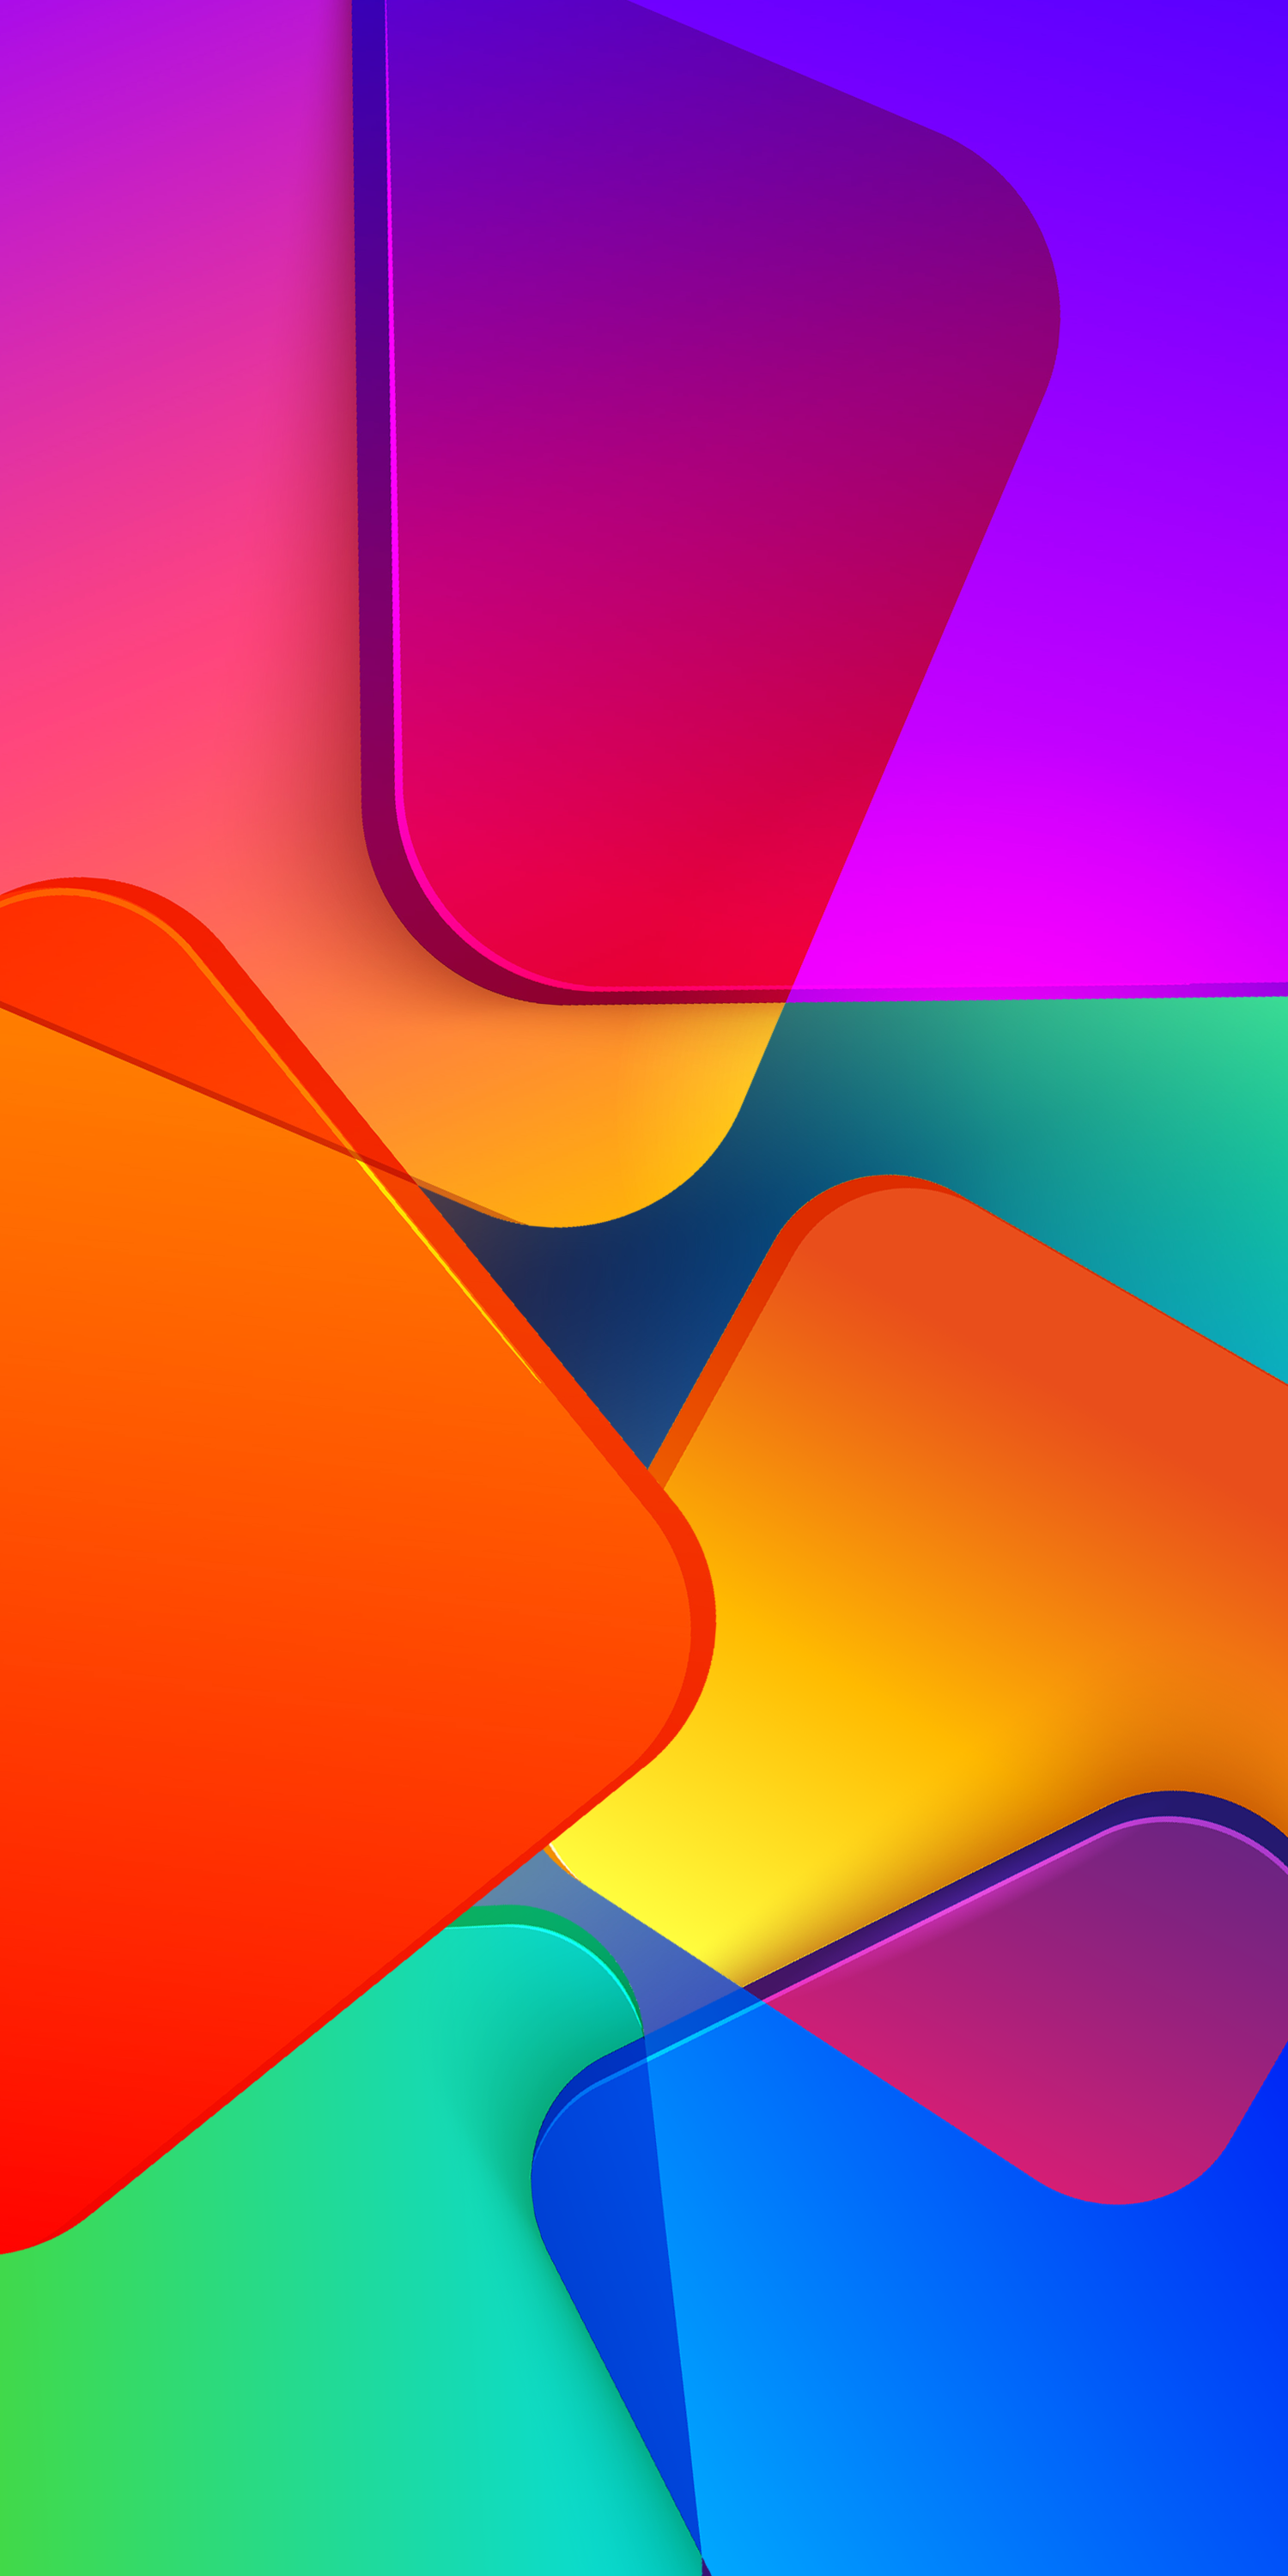 Wallpaper Of Colorful Artwork Backgrounds For Mobile Phone Wallpaper Backgrounds Artwork Abstract Iphone Wallpaper Samsung Wallpaper Smartphone Wallpaper